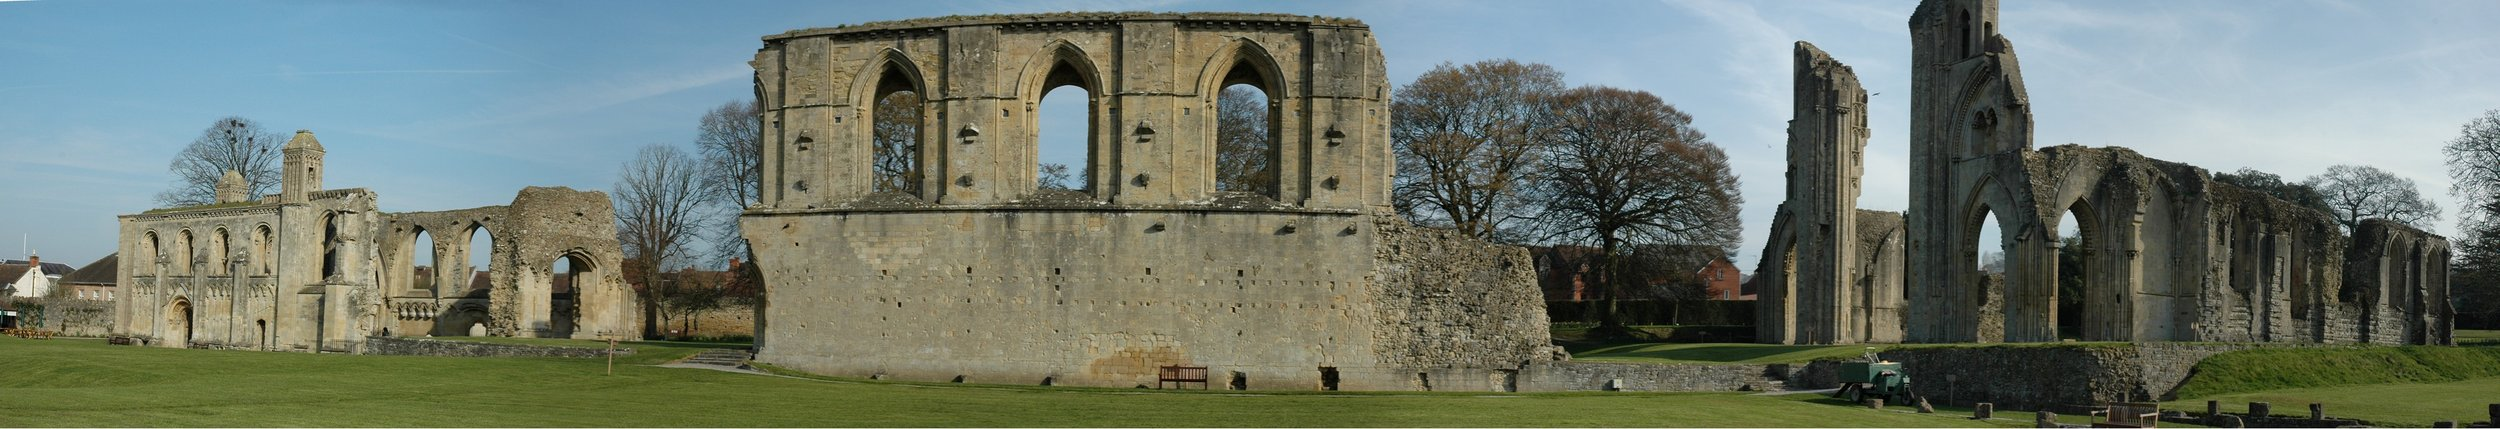 Glastonbury Abbey, including King Arthur's tomb (image from Wikipedia)